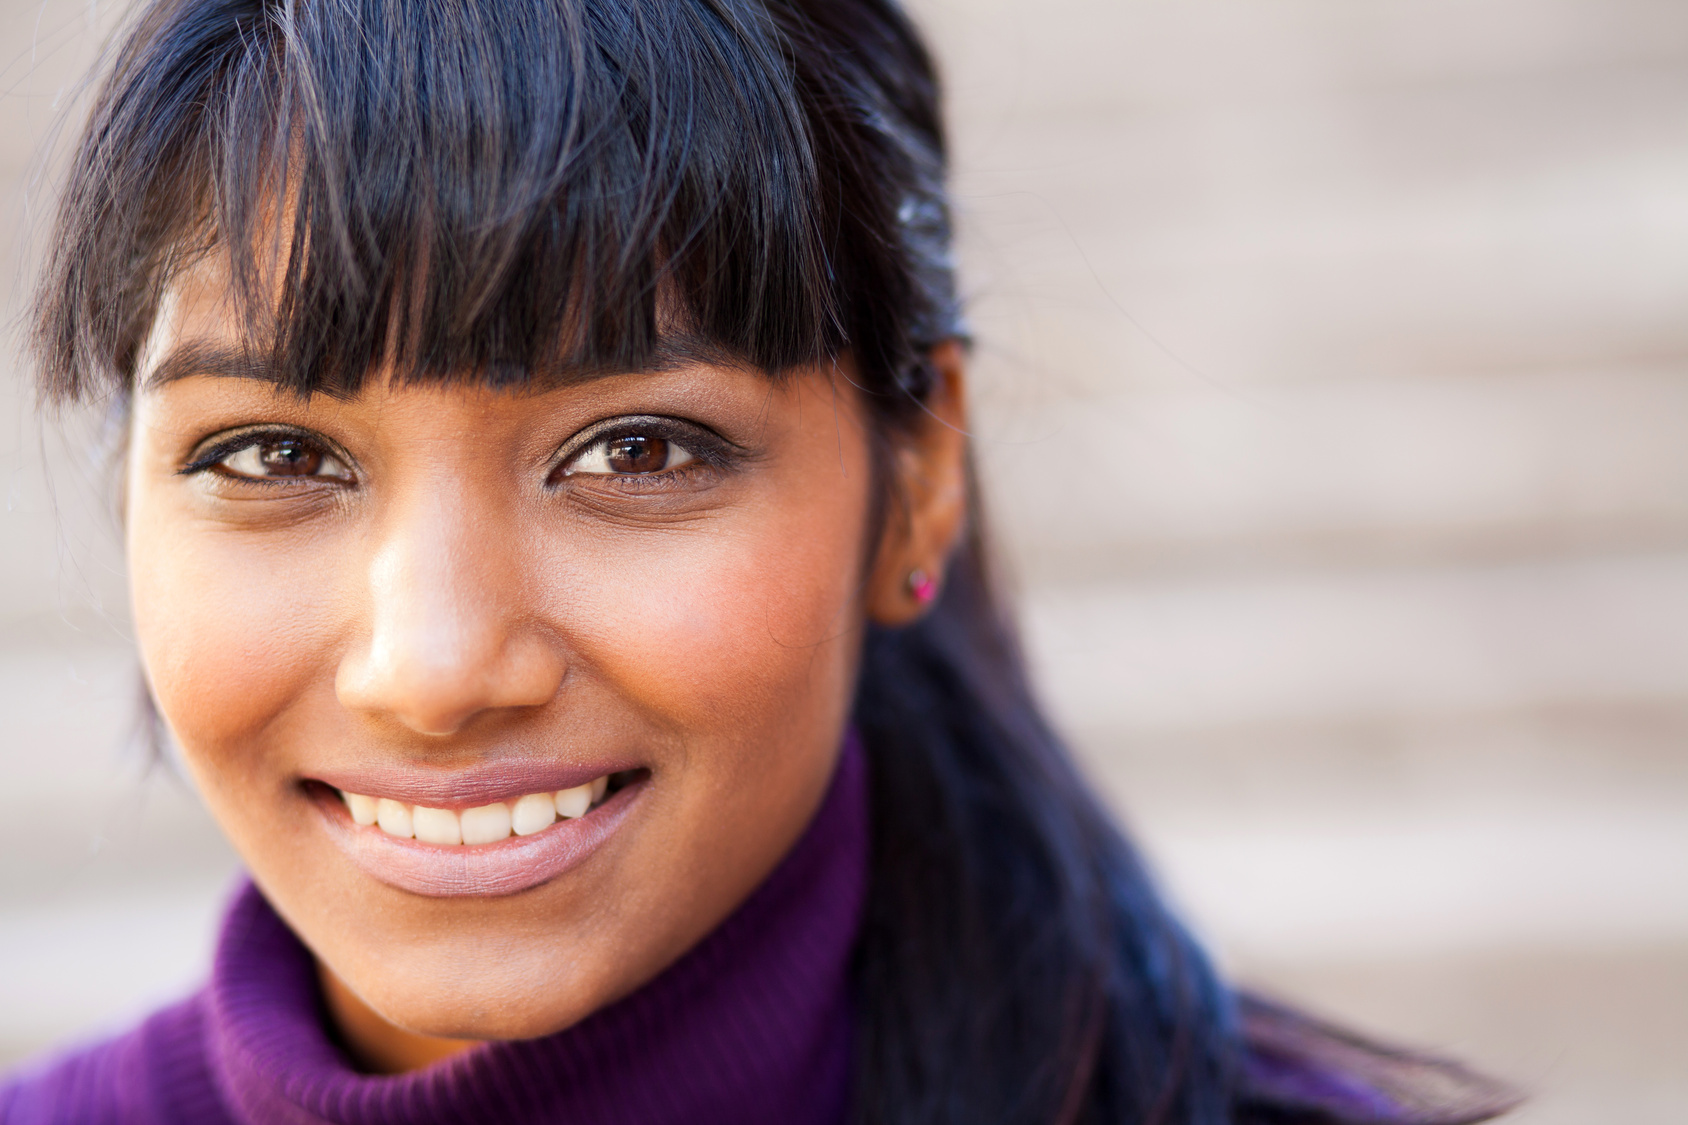 indian woman black hair purple sweater smiling